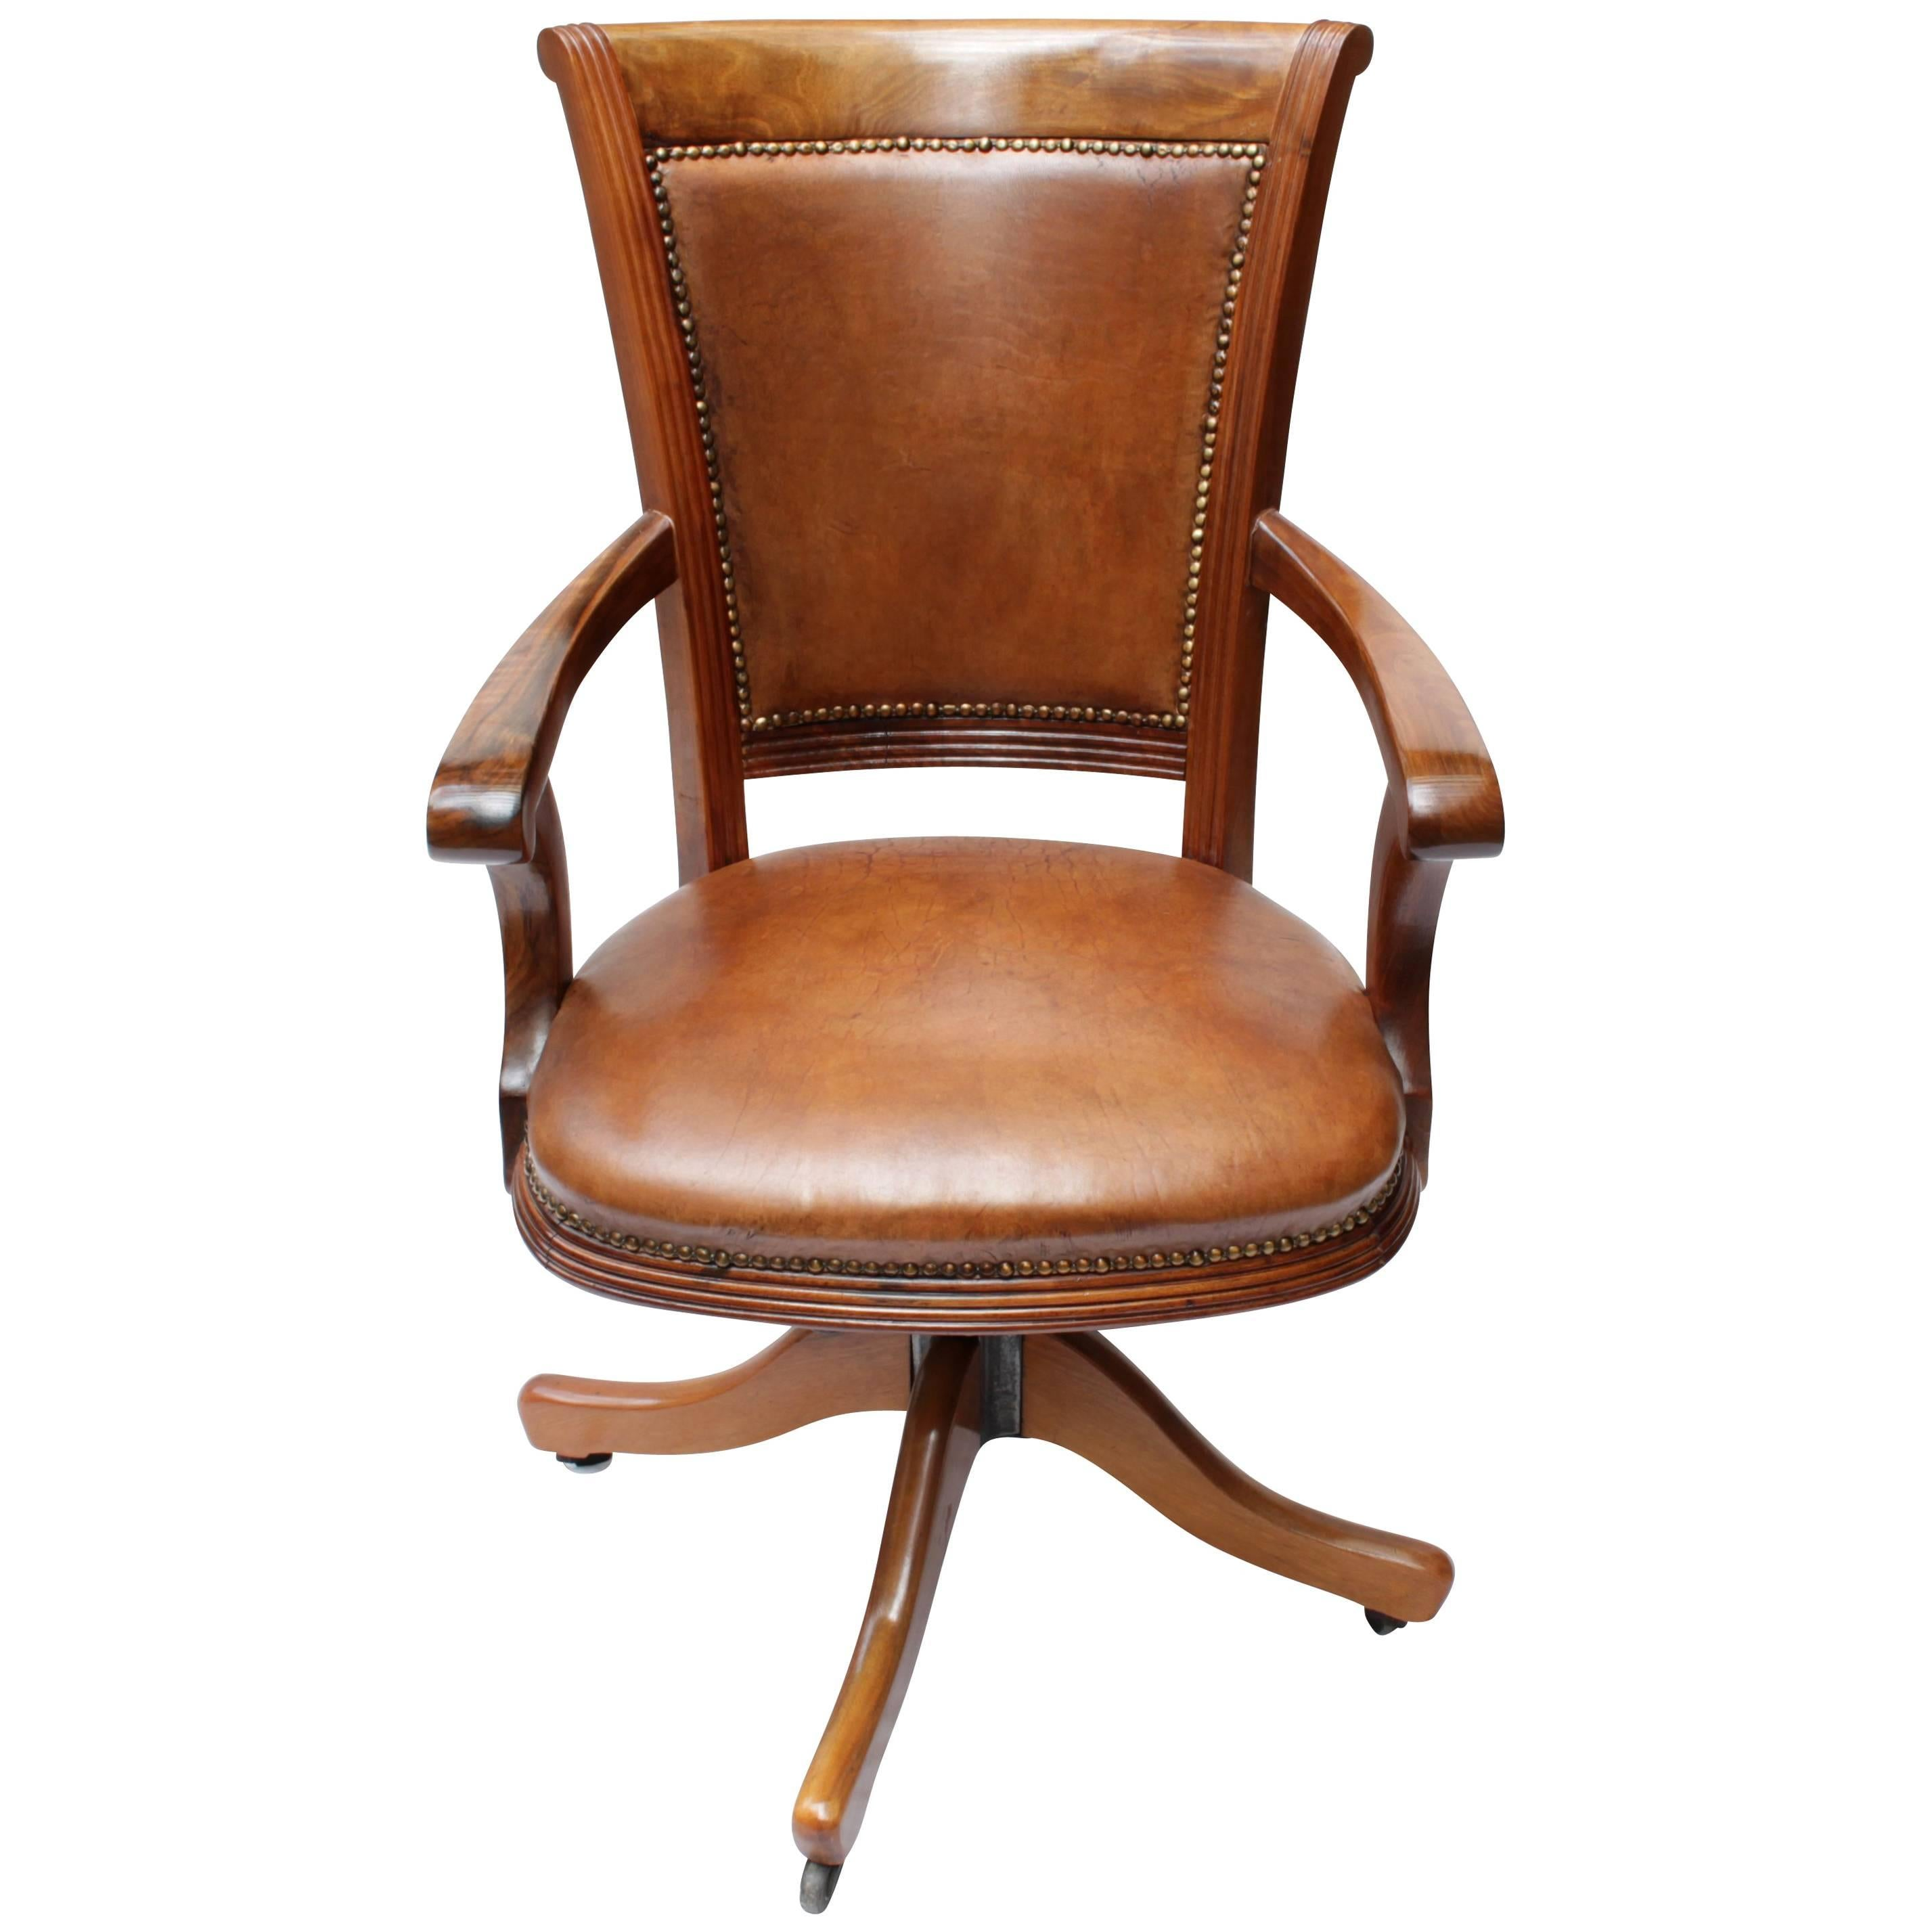 Bürostuhl Holz Vintage Art Deco Leather Captains Office Chair Swivel Frame Bei 1stdibs